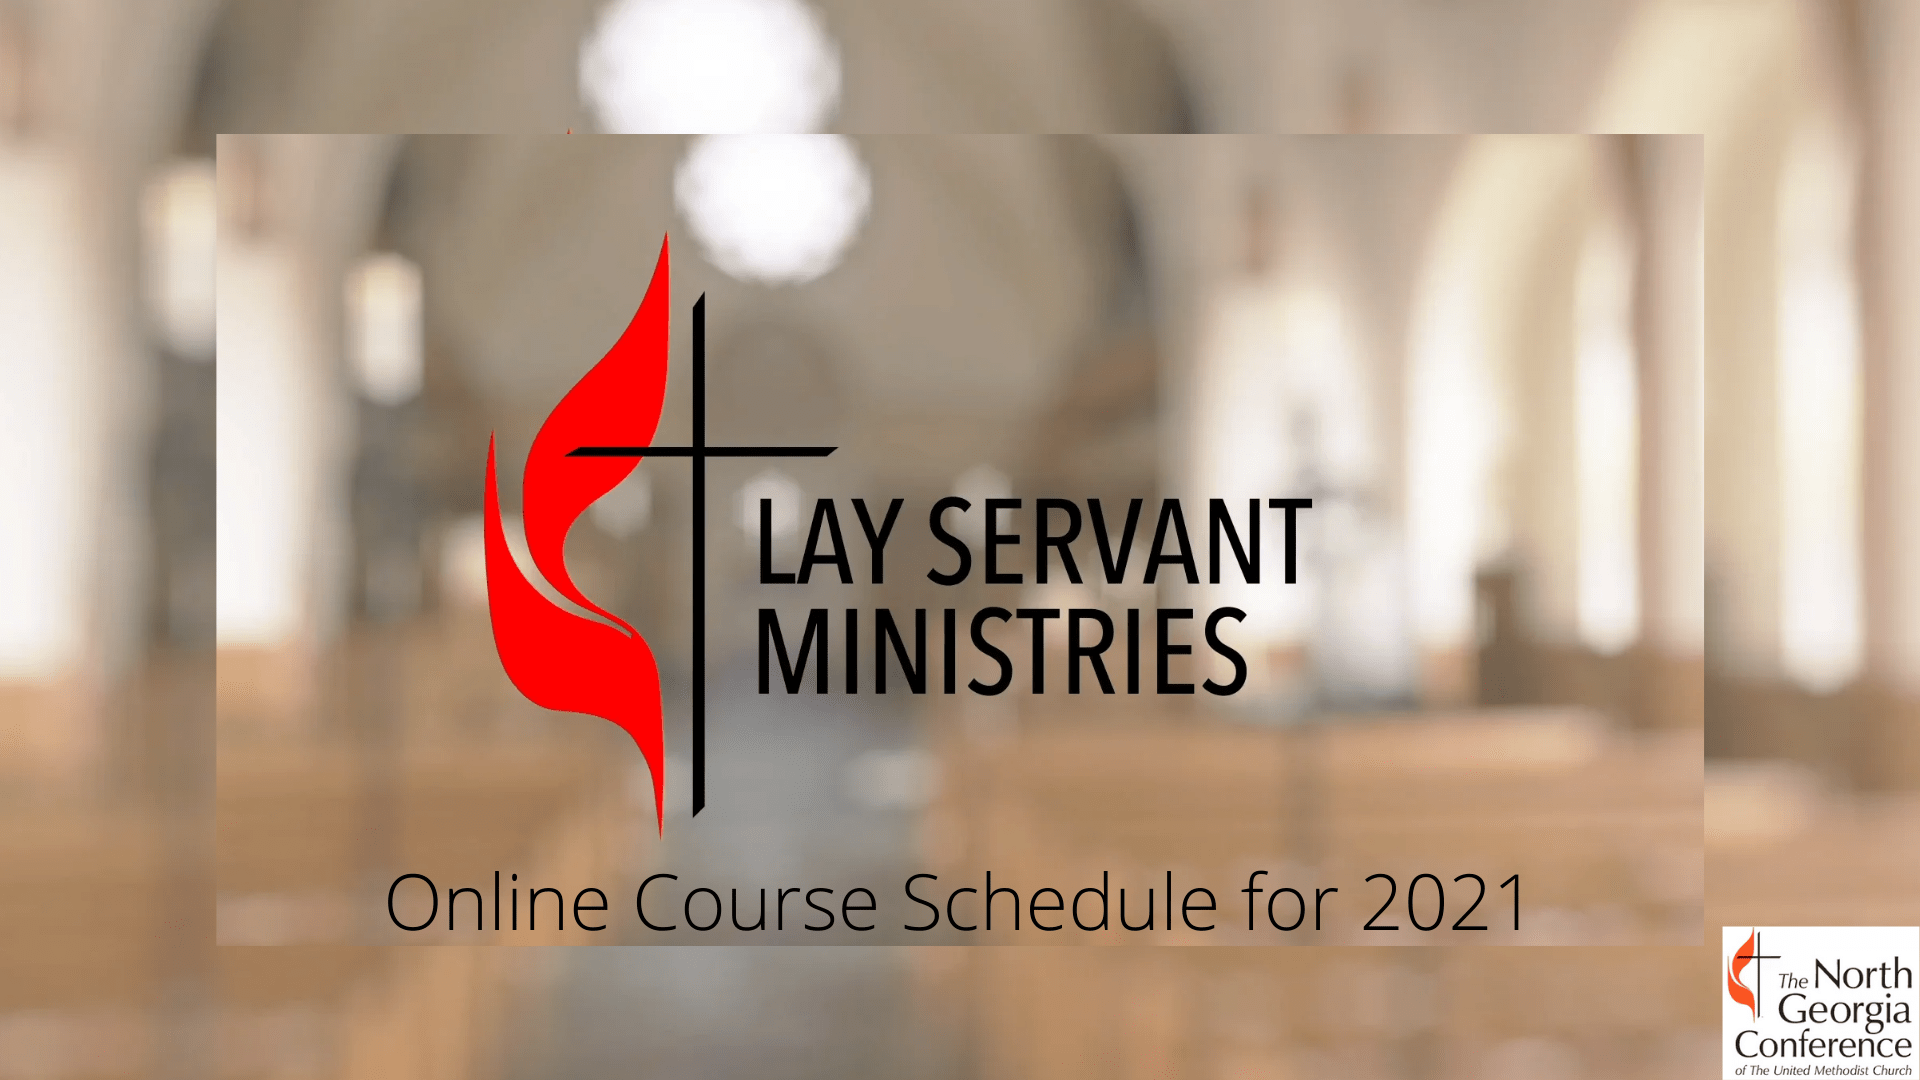 Lay Servant Online Schedule 2021, Cross & Flame, blurry background